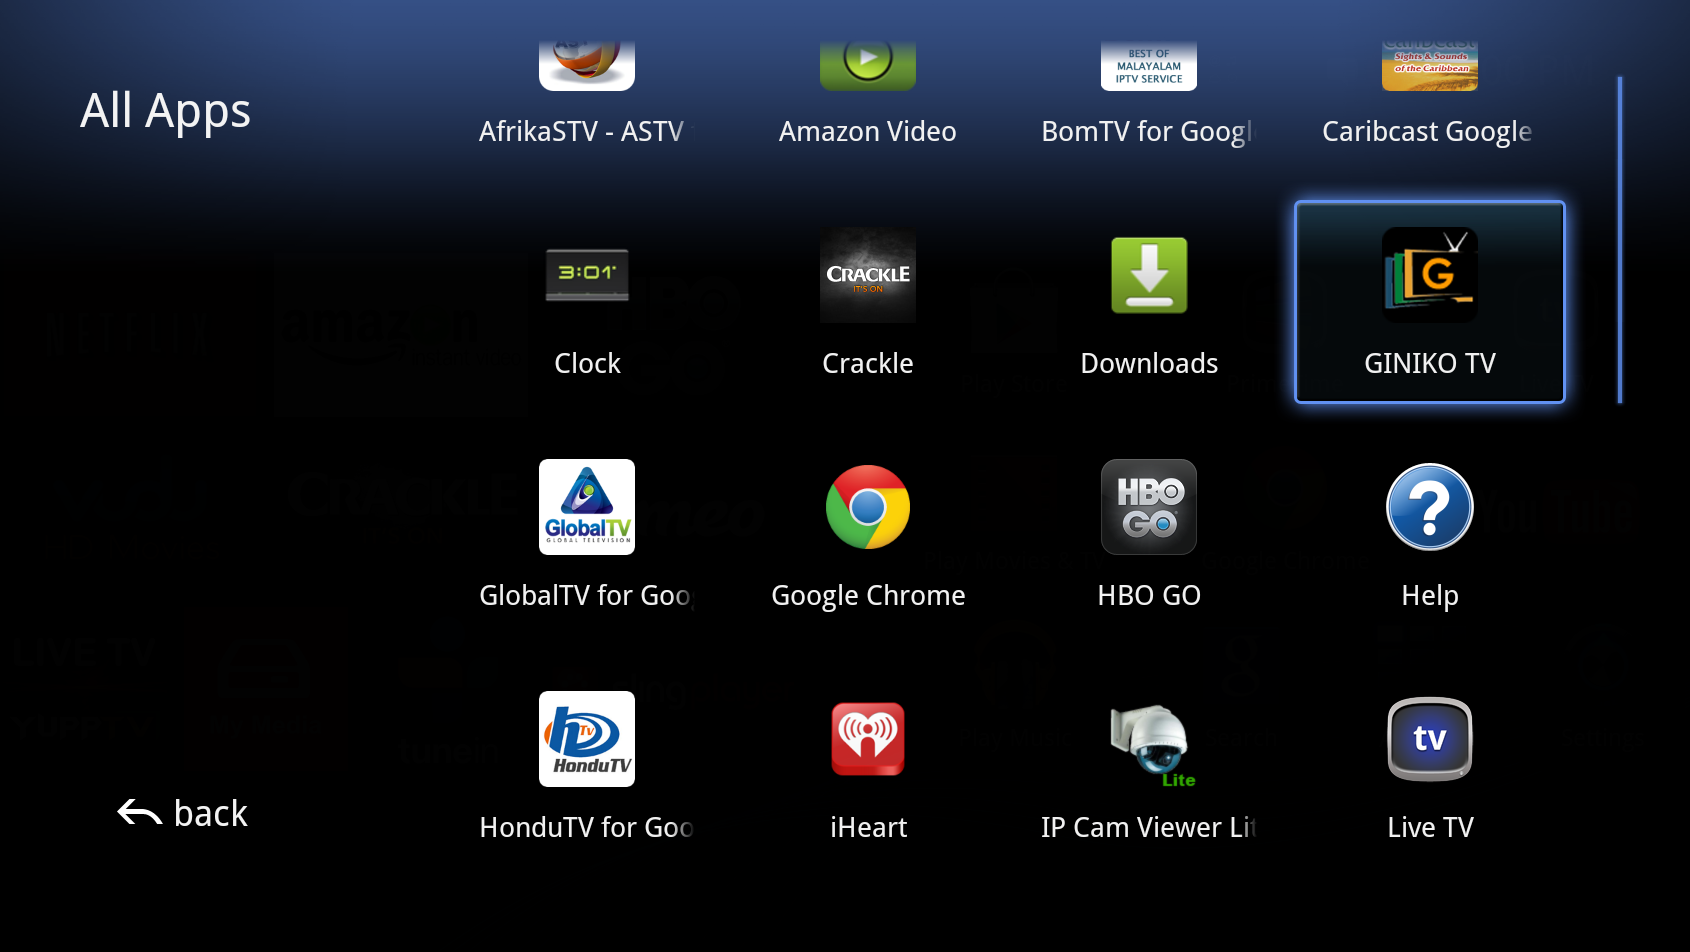 How to Install the Free Giniko App on Your Google TV